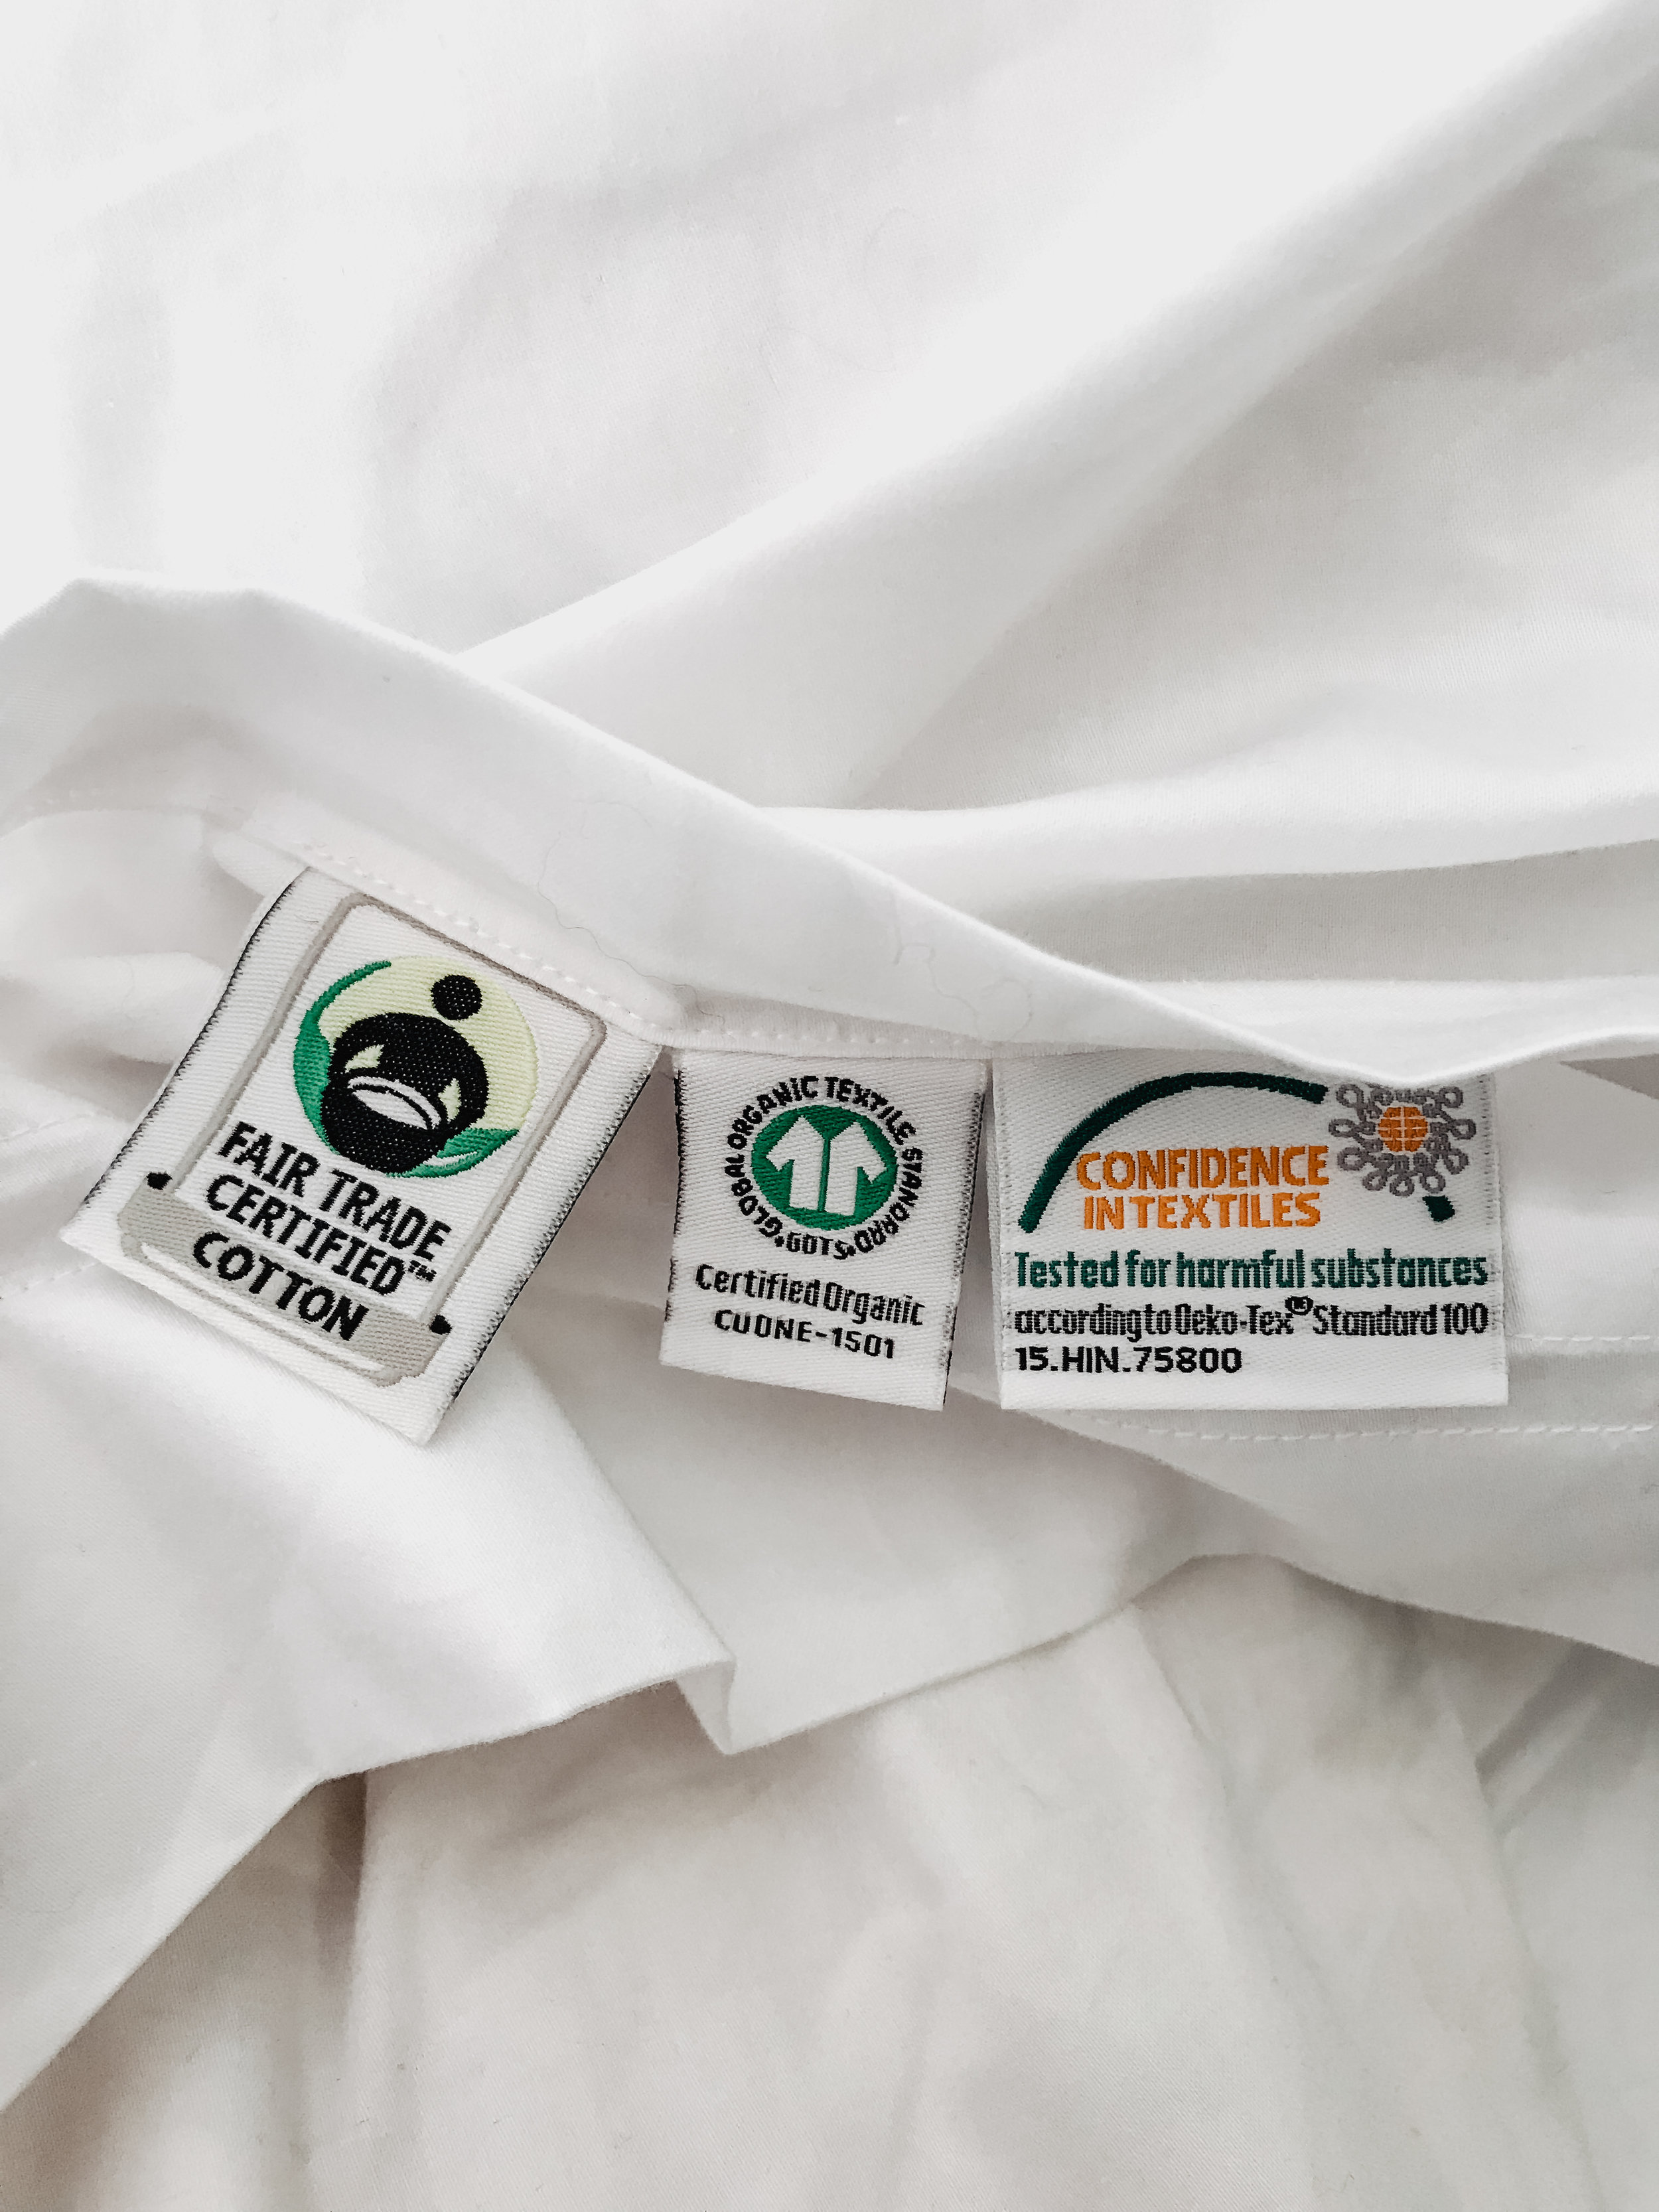 SOL uses 100% organic cotton grown from non-GMO seed. They are committed to supporting better farming practices that reduce carbon footprint, converse and protect drinking water, and keep us and our communities safe.